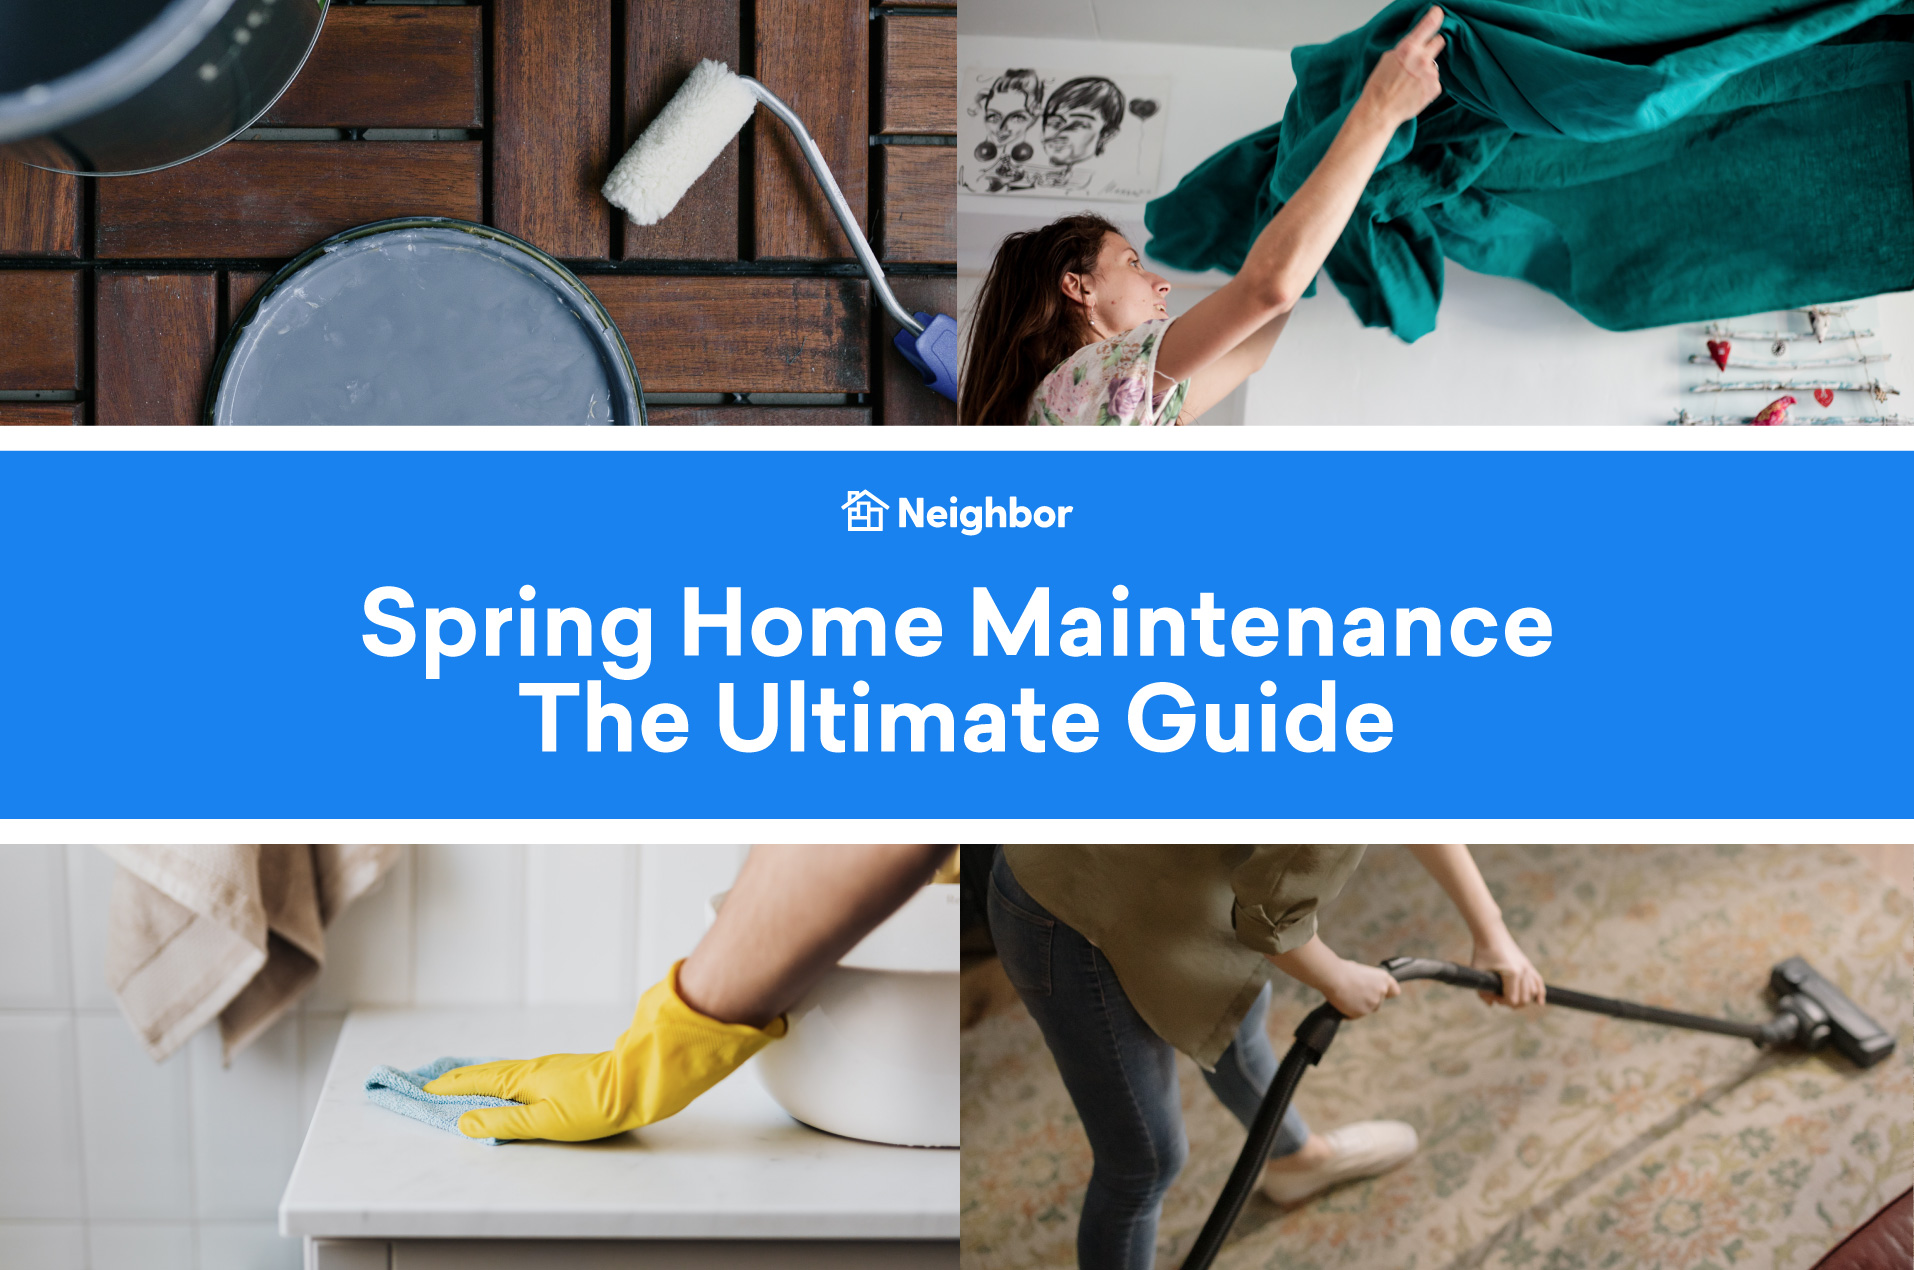 Spring Home Maintenance: The Ultimate Guide